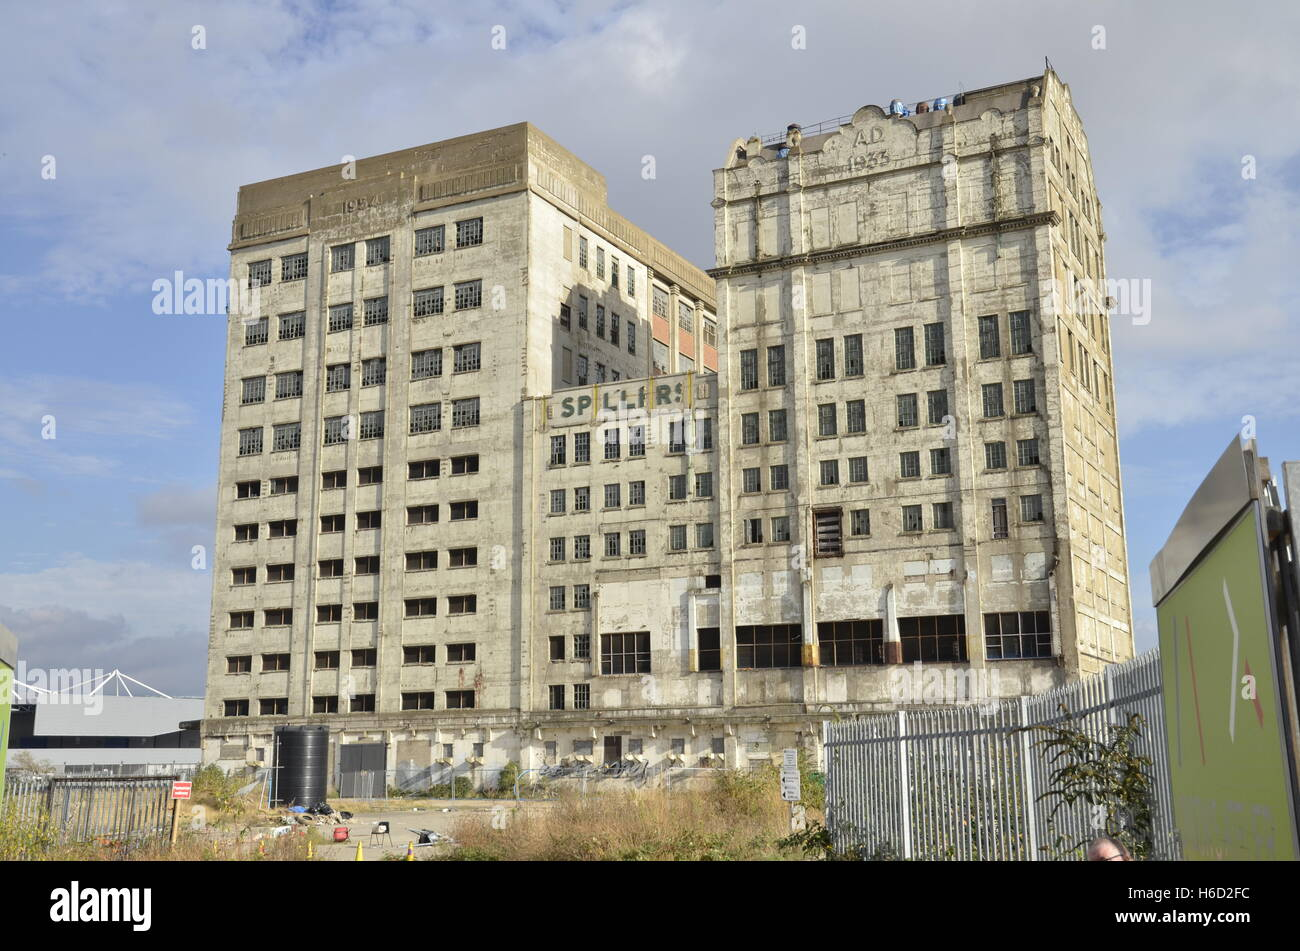 The derelict Millennium Mills, Silvertown, Royal Victoria Docks, London. - Stock Image